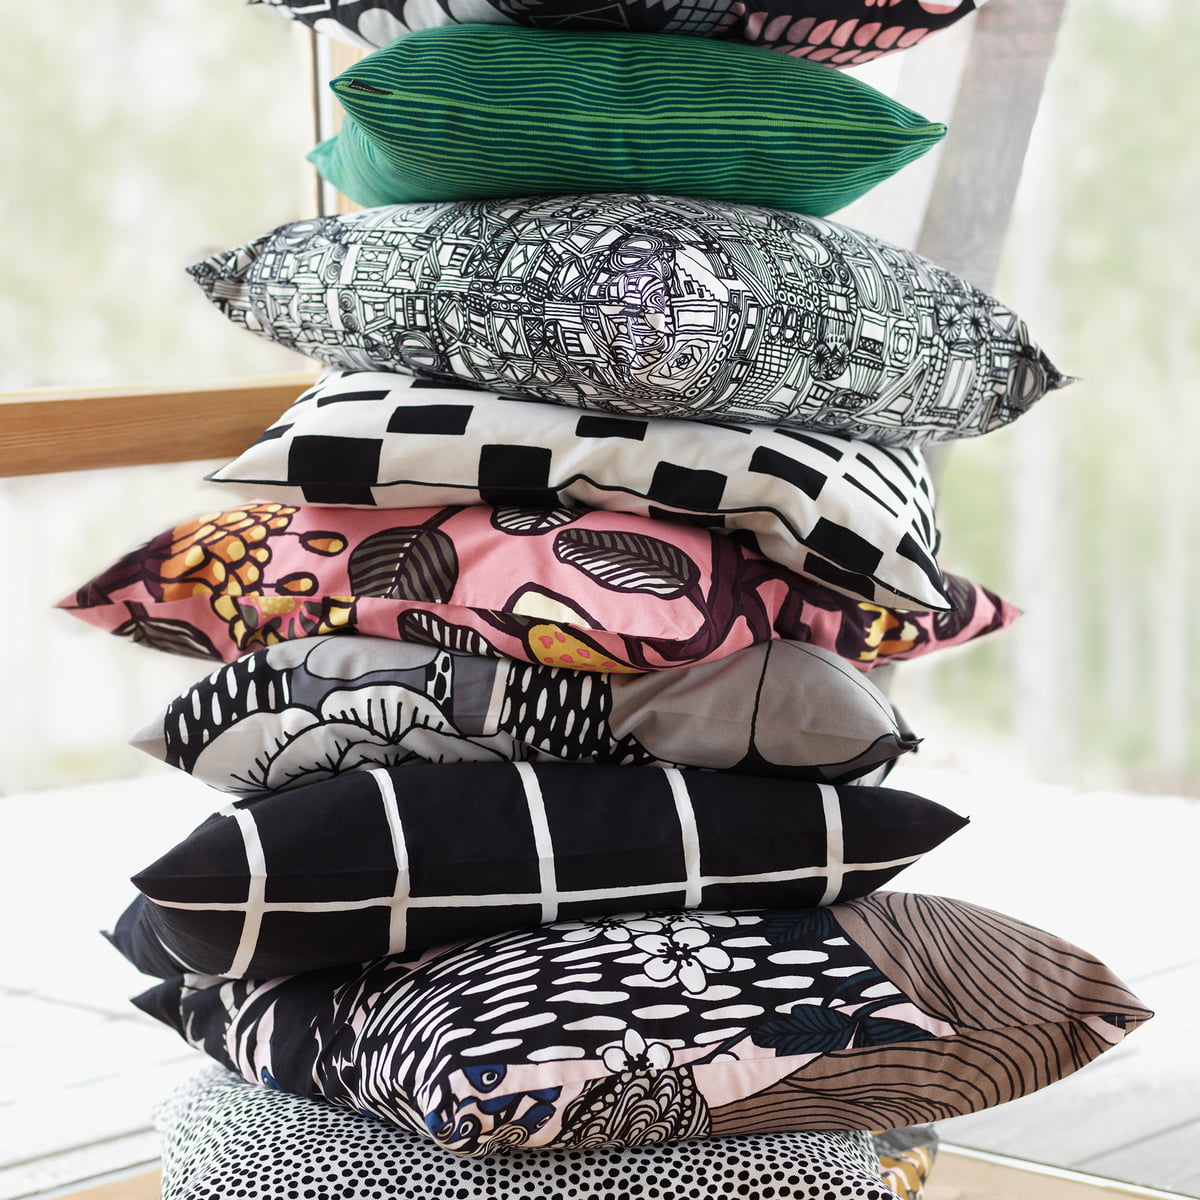 tiara kissenbezug 50 x 50 cm von marimekko. Black Bedroom Furniture Sets. Home Design Ideas